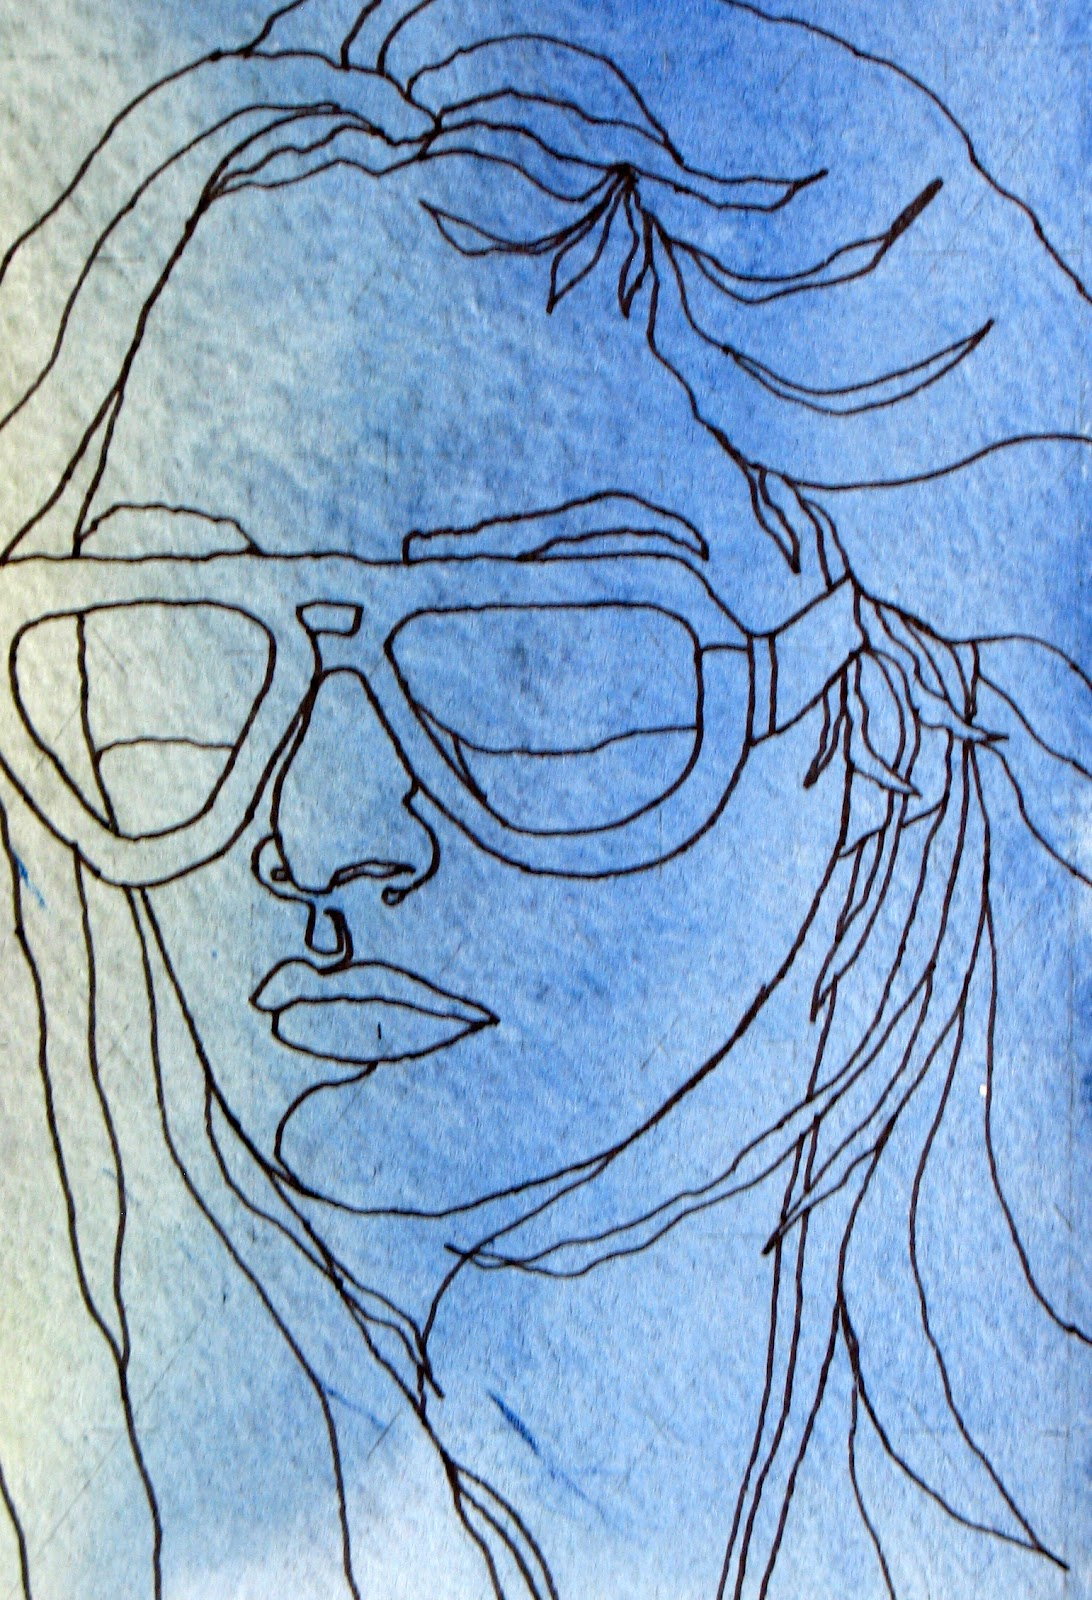 Continuous Line Drawing Of Face : The painted prism day project a face